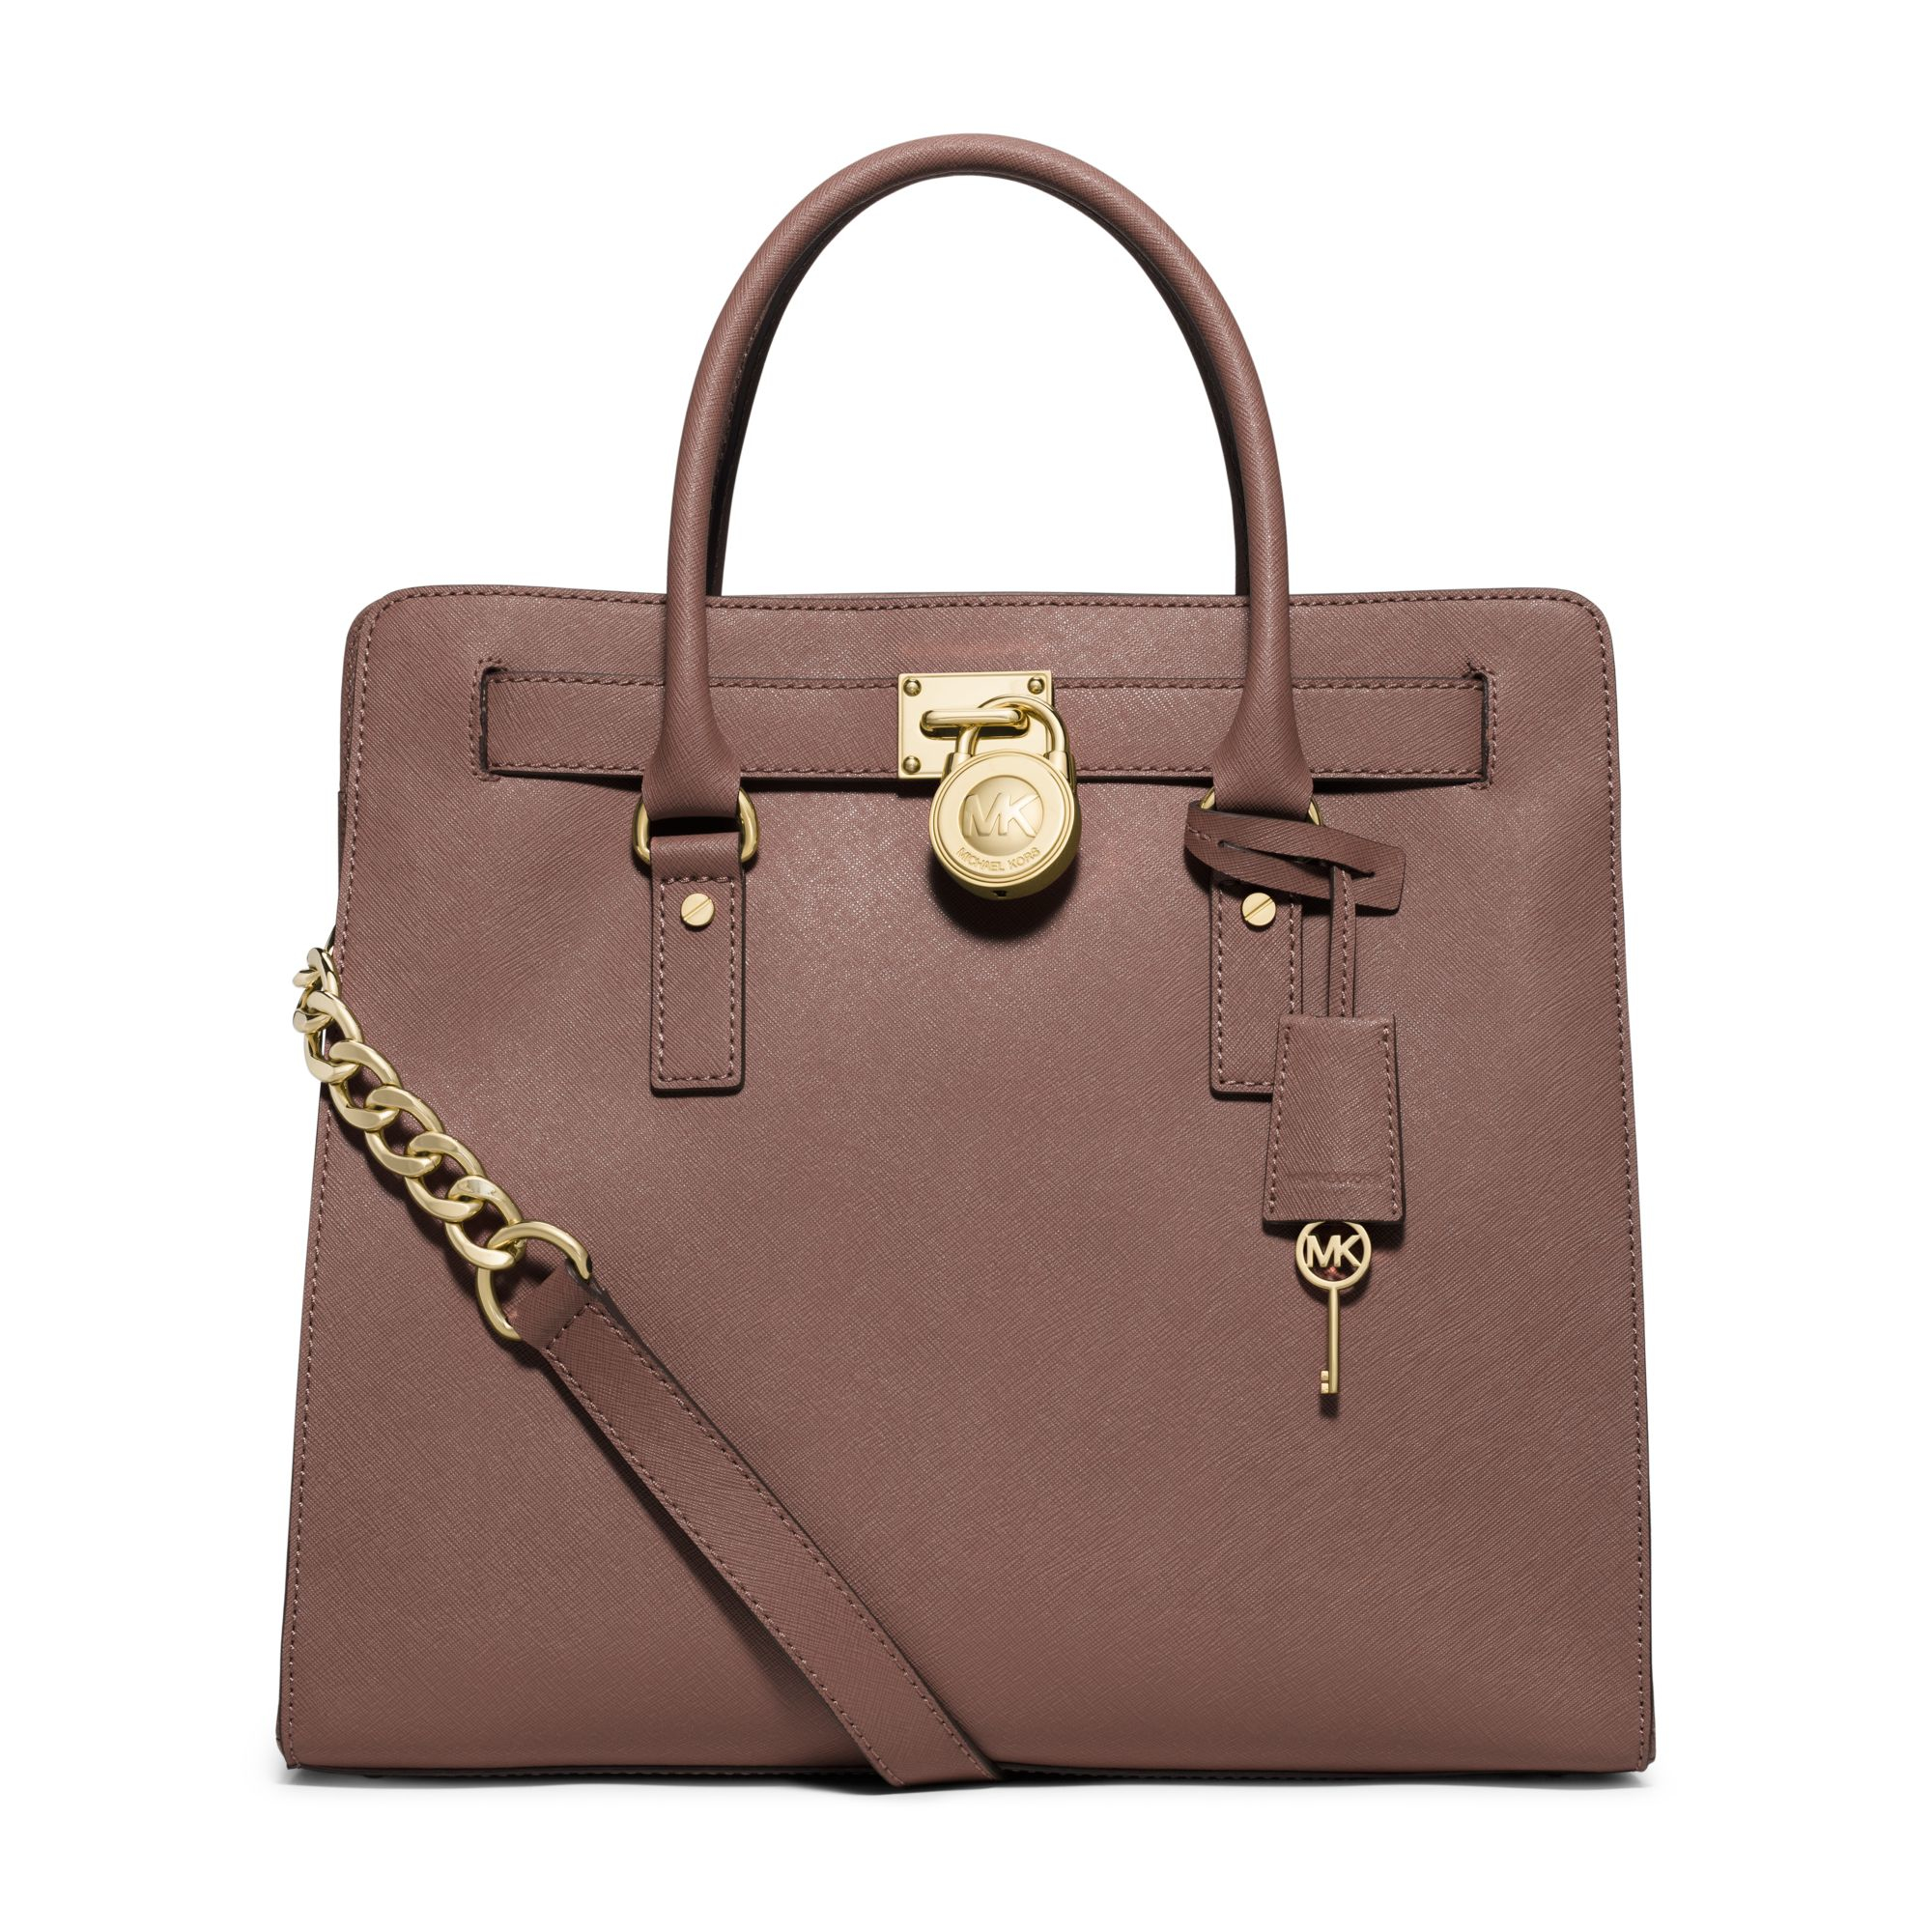 c1e3cb59fc37d6 Michael Kors Saffiano Tote Large | Stanford Center for Opportunity ...